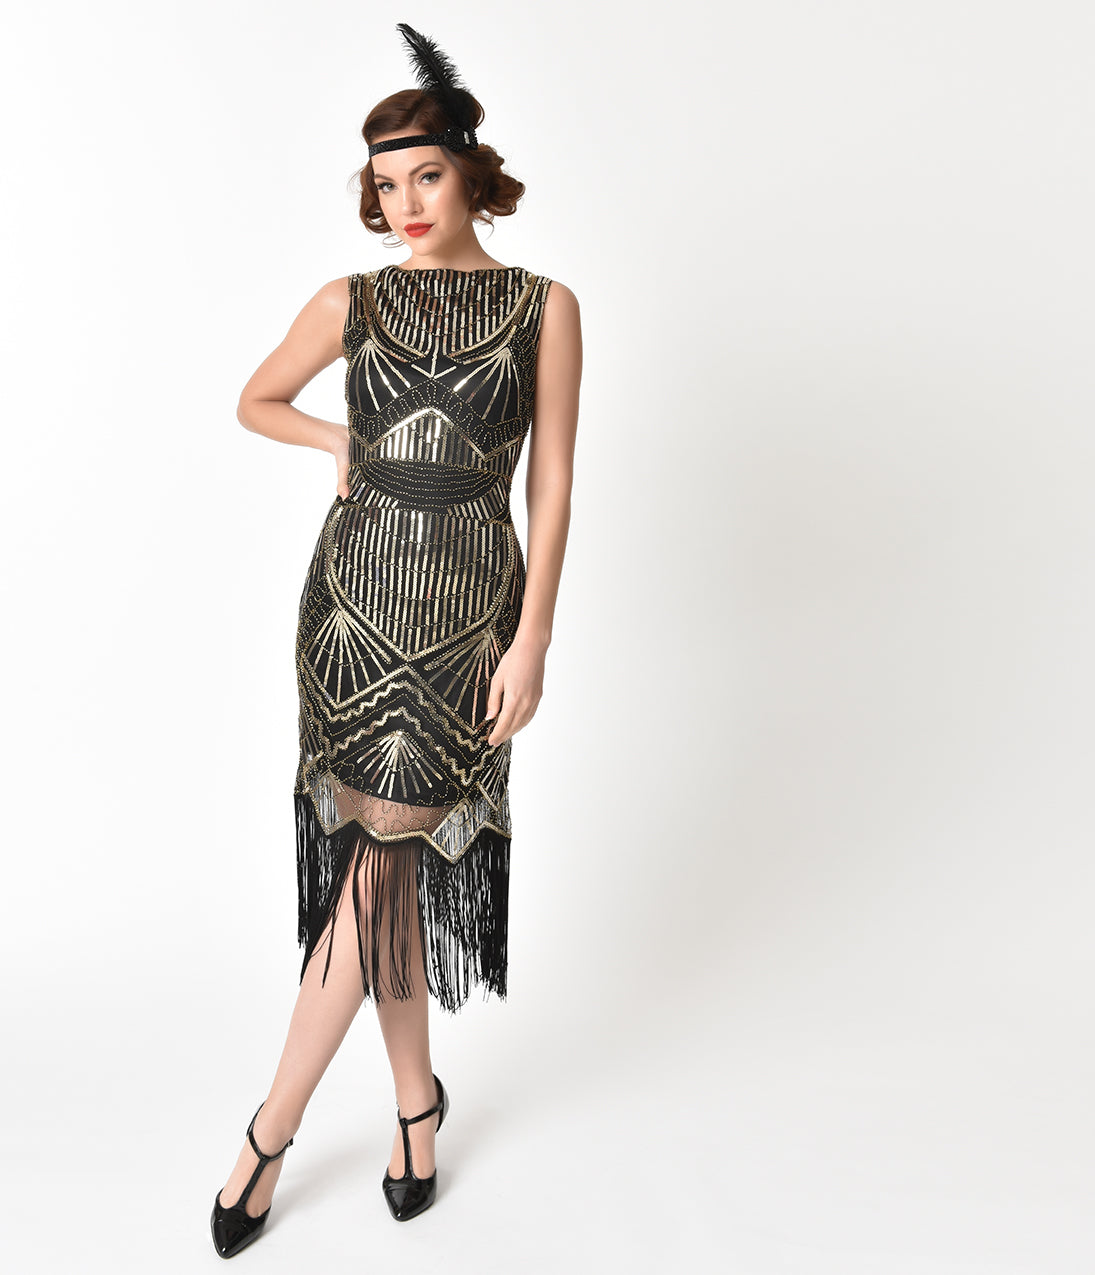 Vintage Inspired Evening Dresses, Gowns and Formal Wear